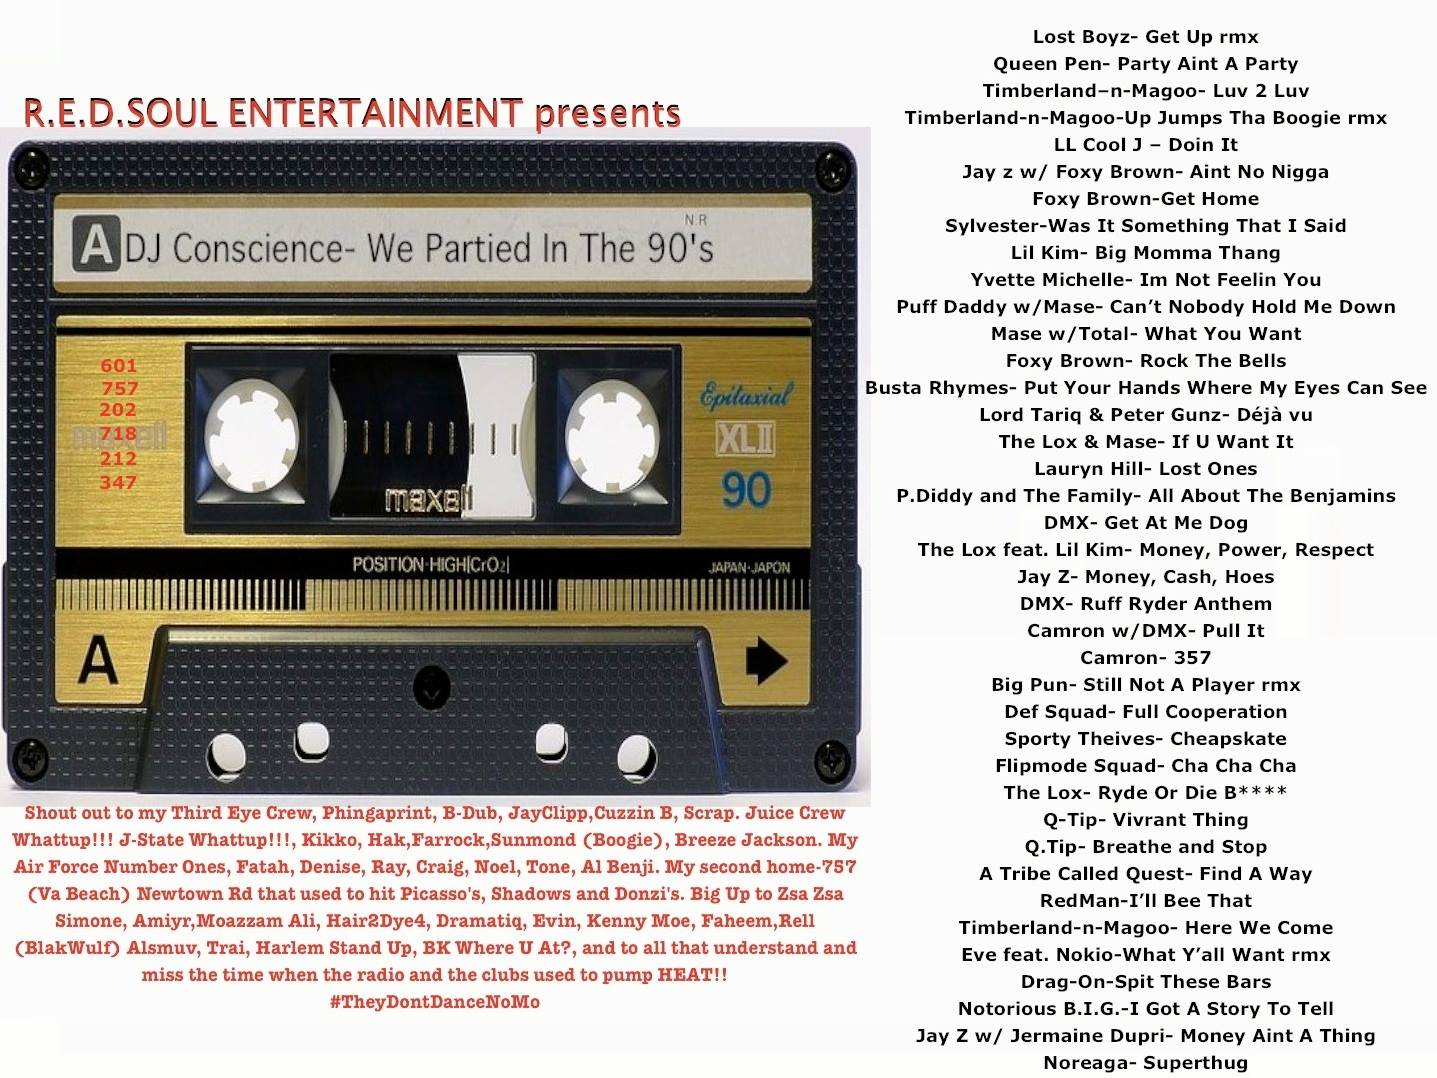 We Partied In The 90's by DJ Conscience